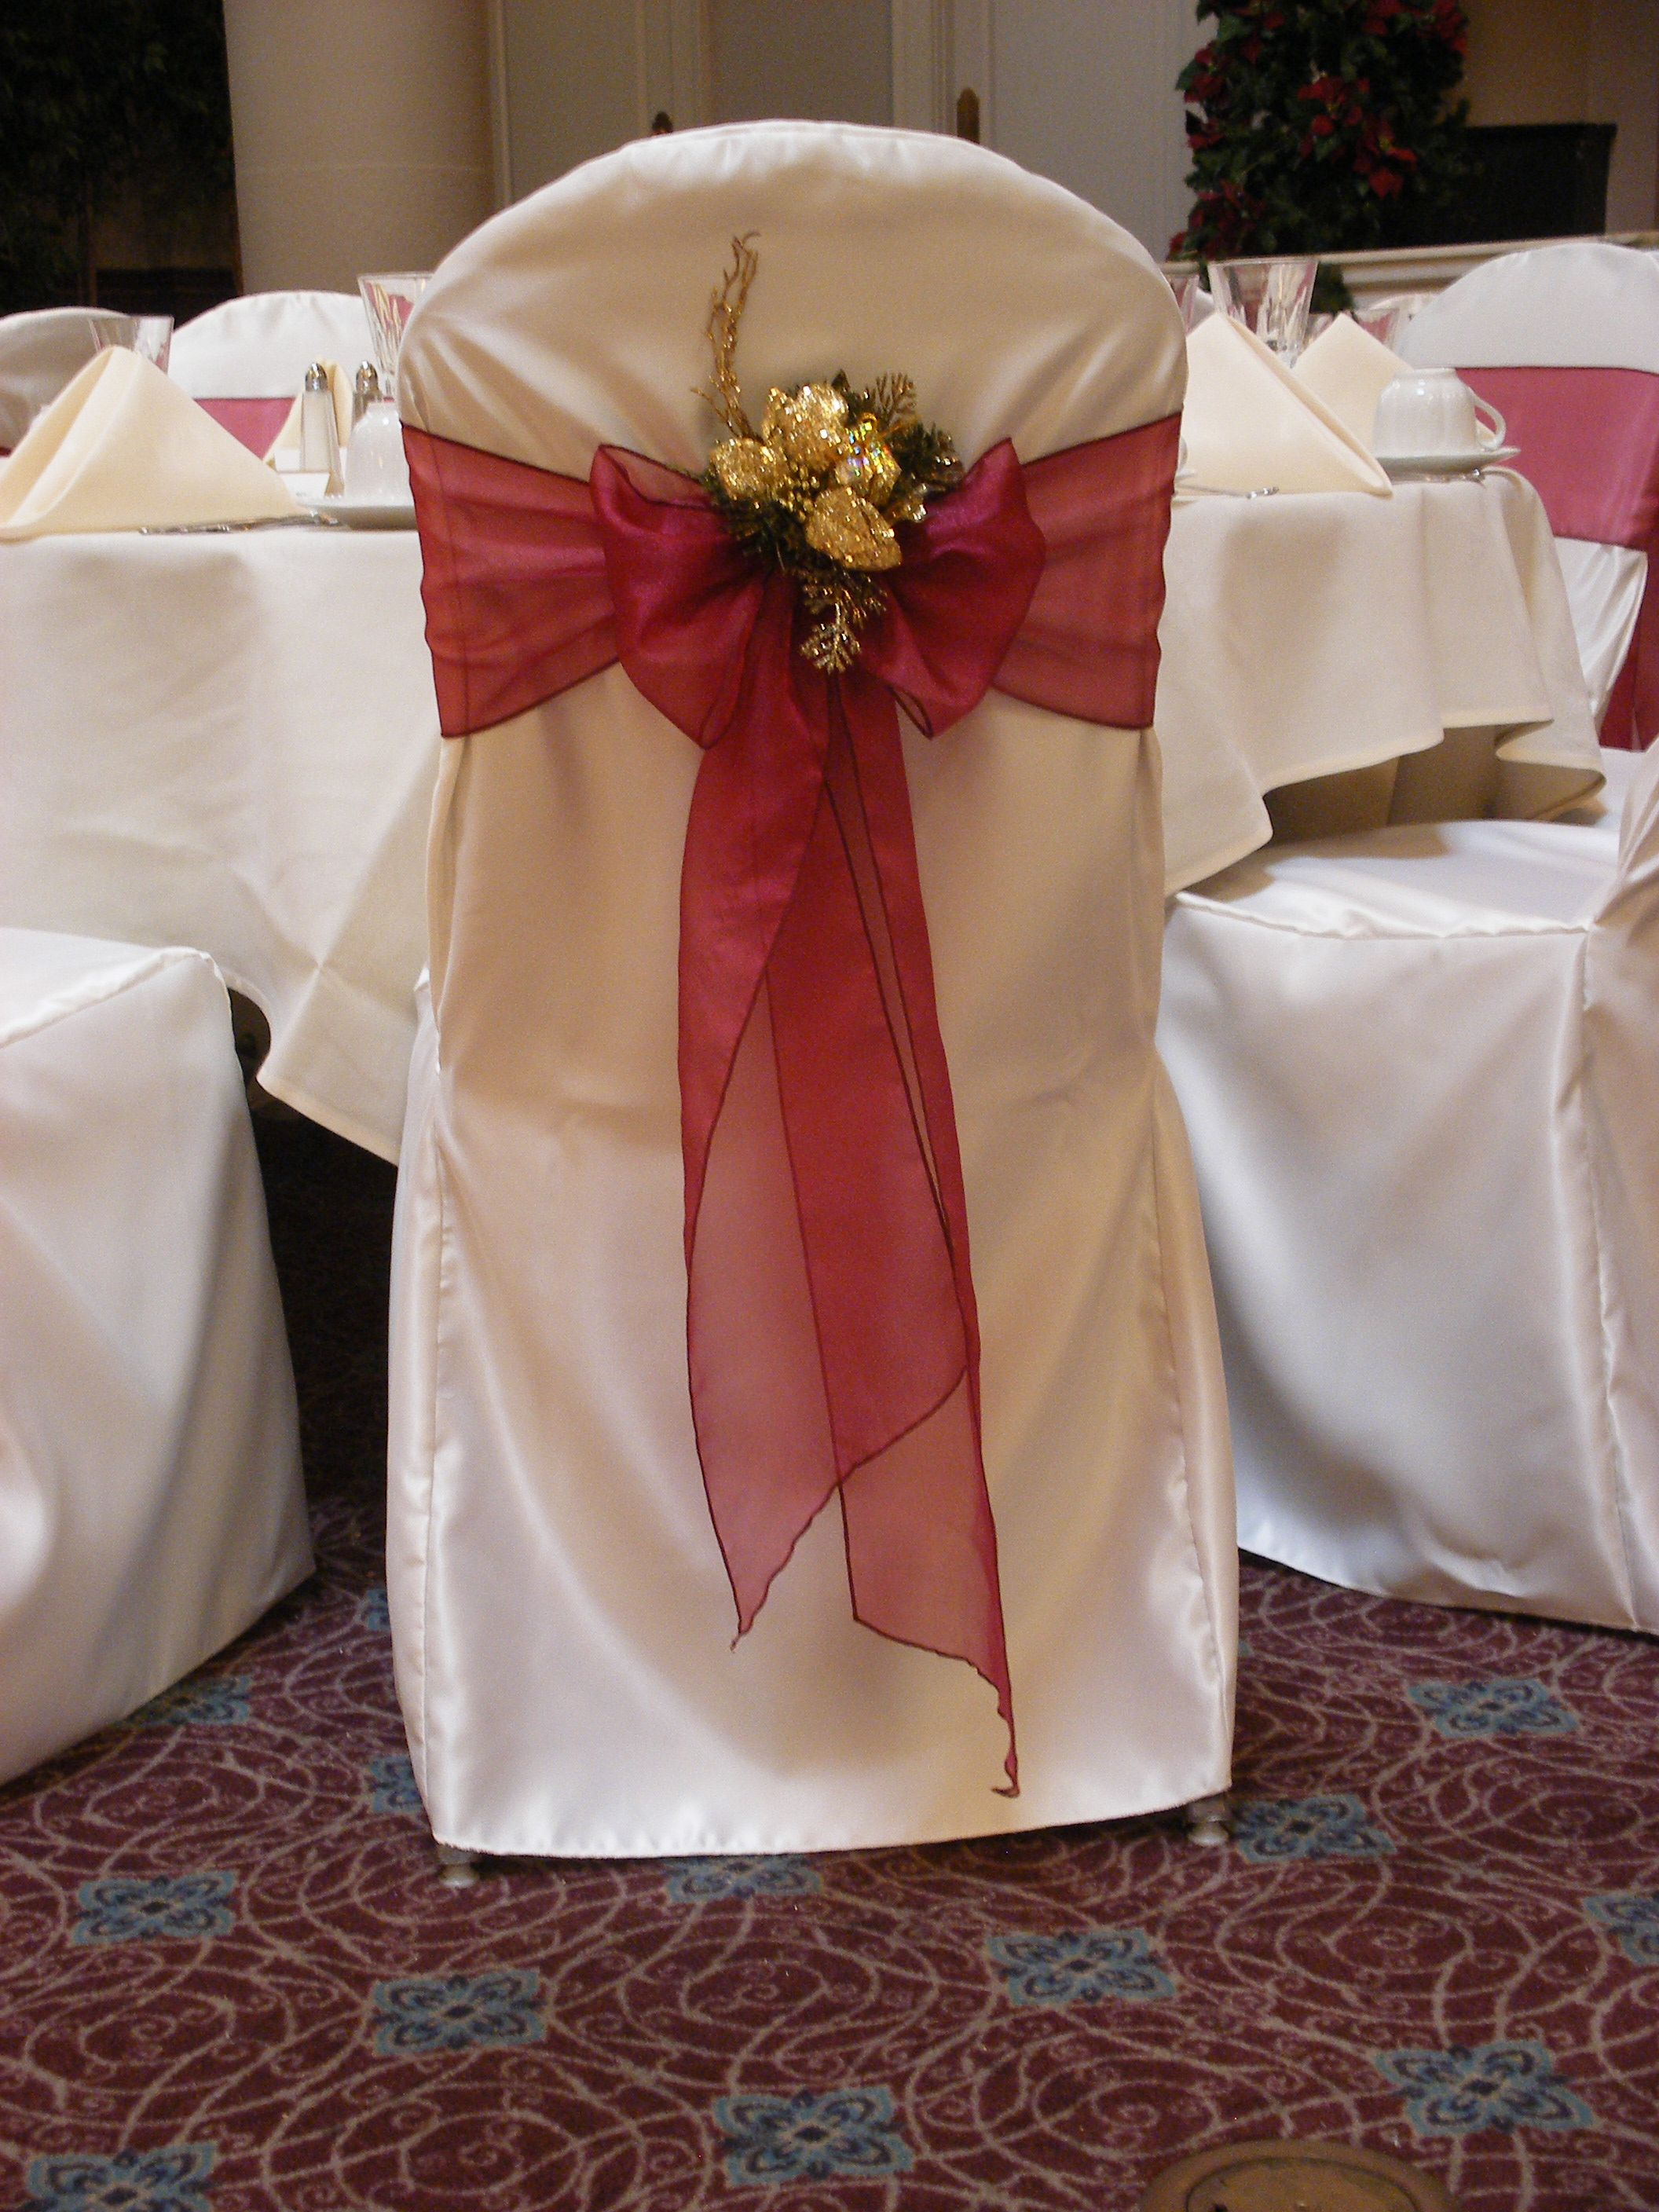 christmas chair covers white round teak table and chairs pittsburgh services bows wedding ideas